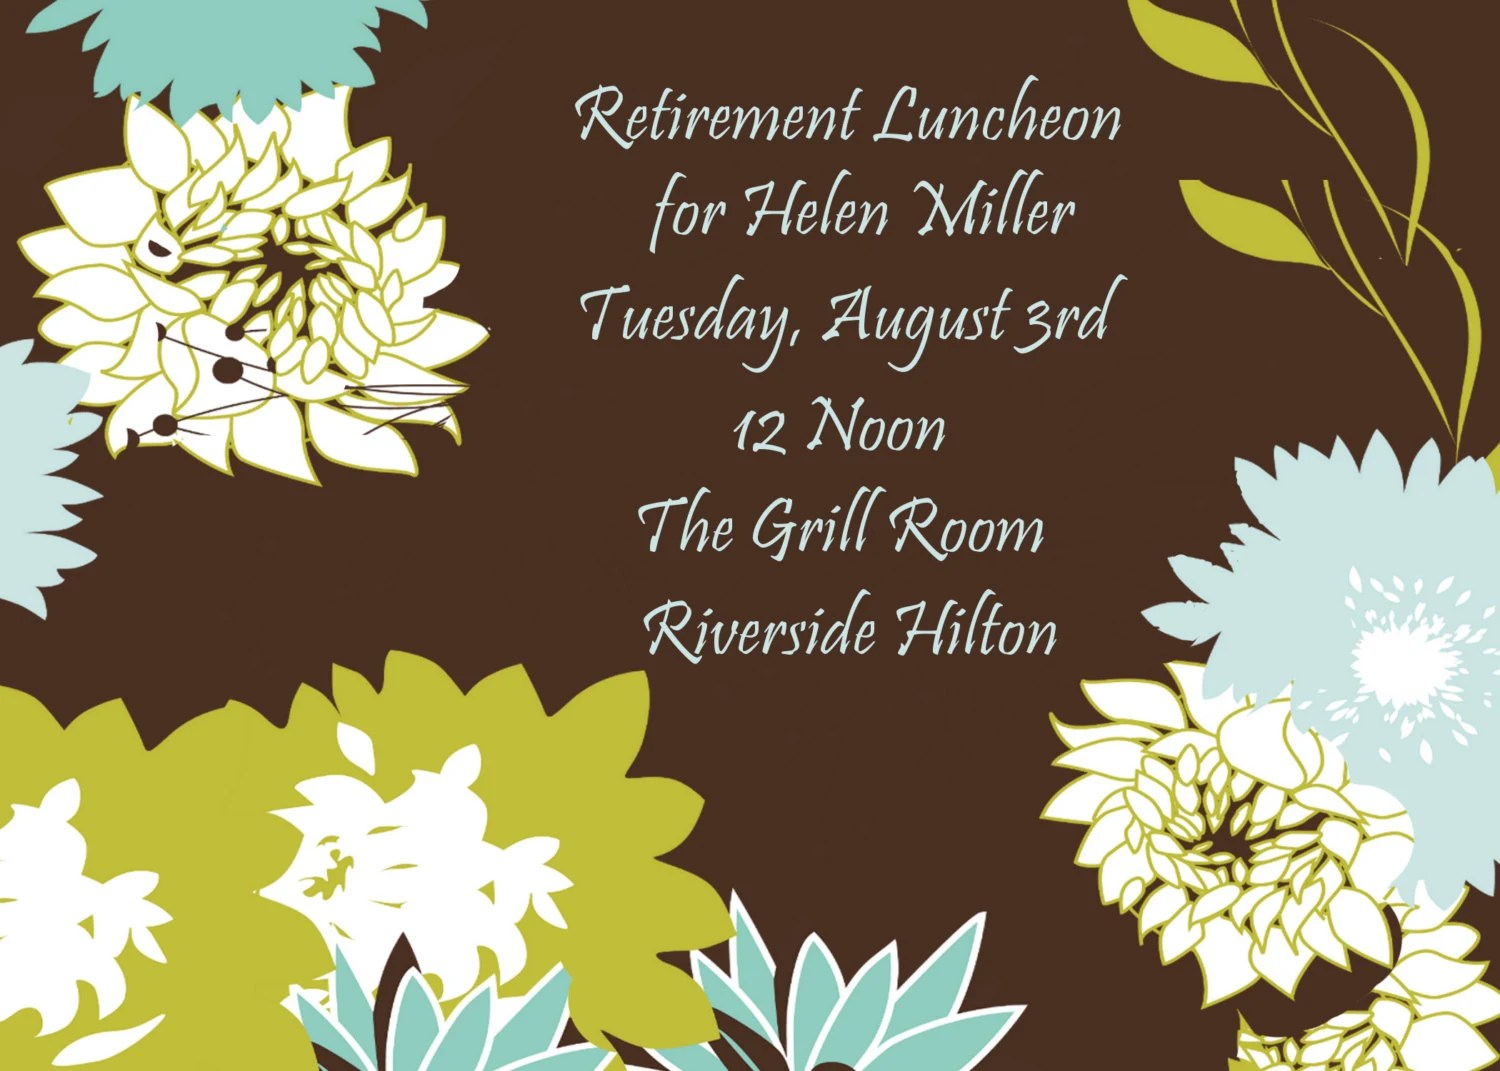 Retirement Luncheon Invitation